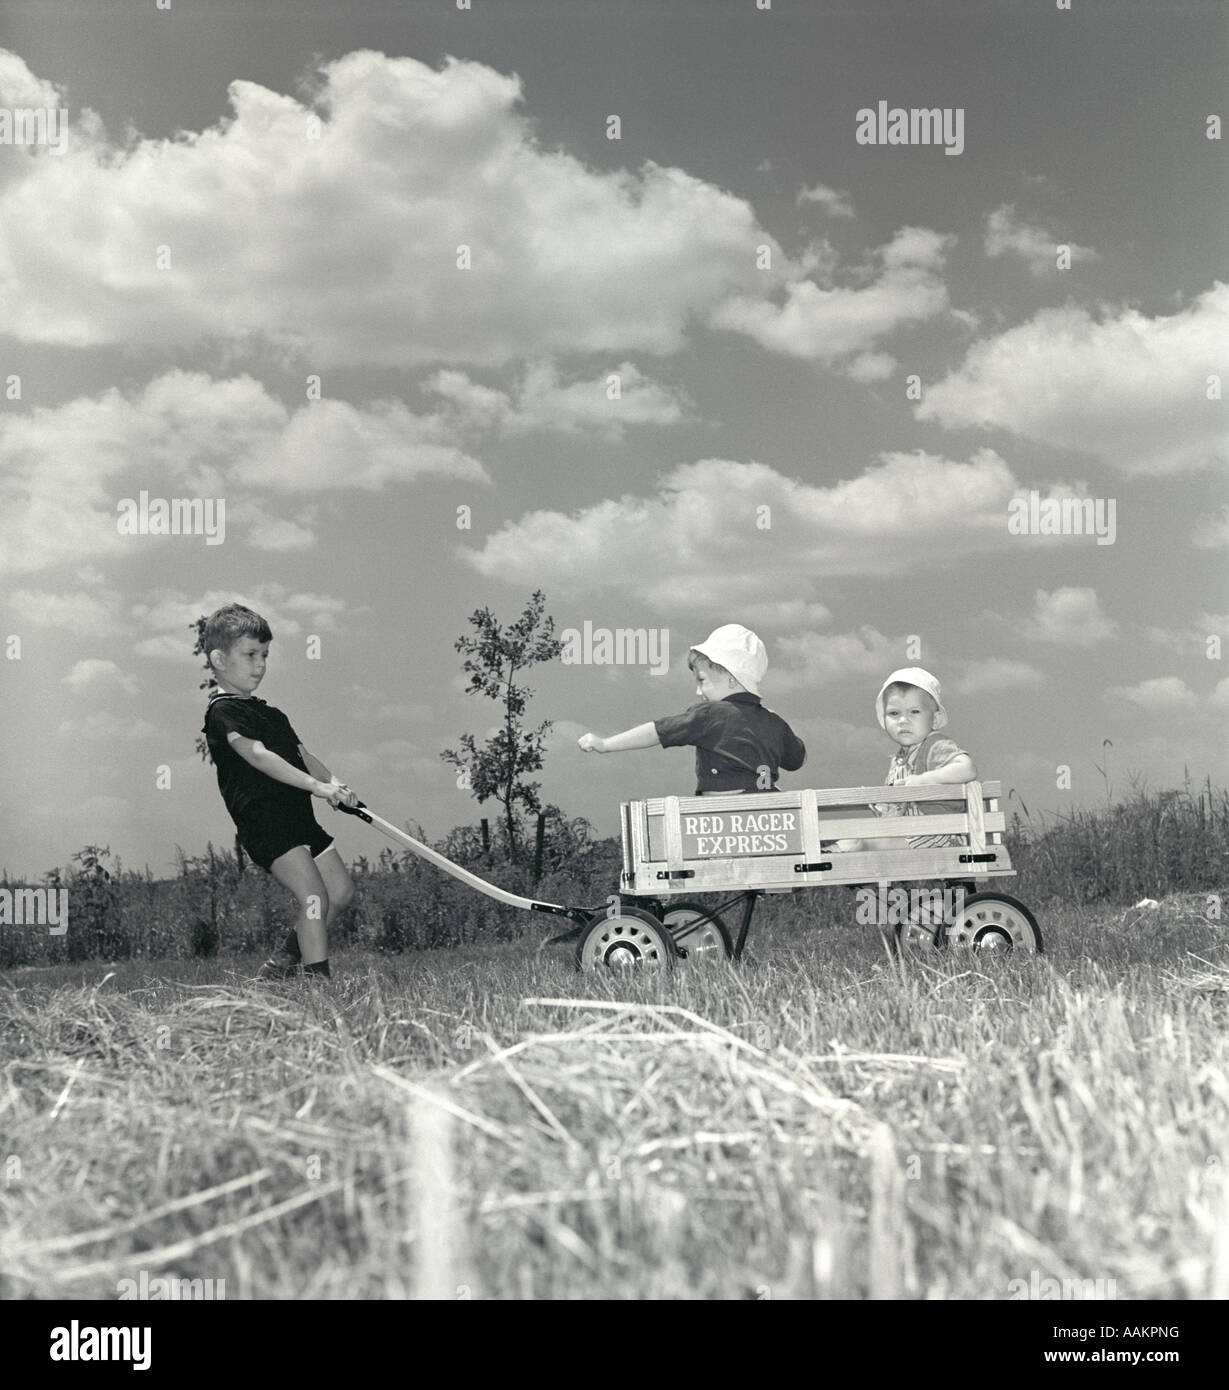 Boy Pulling Wagon : S little boy pulling red racer express wagon with two